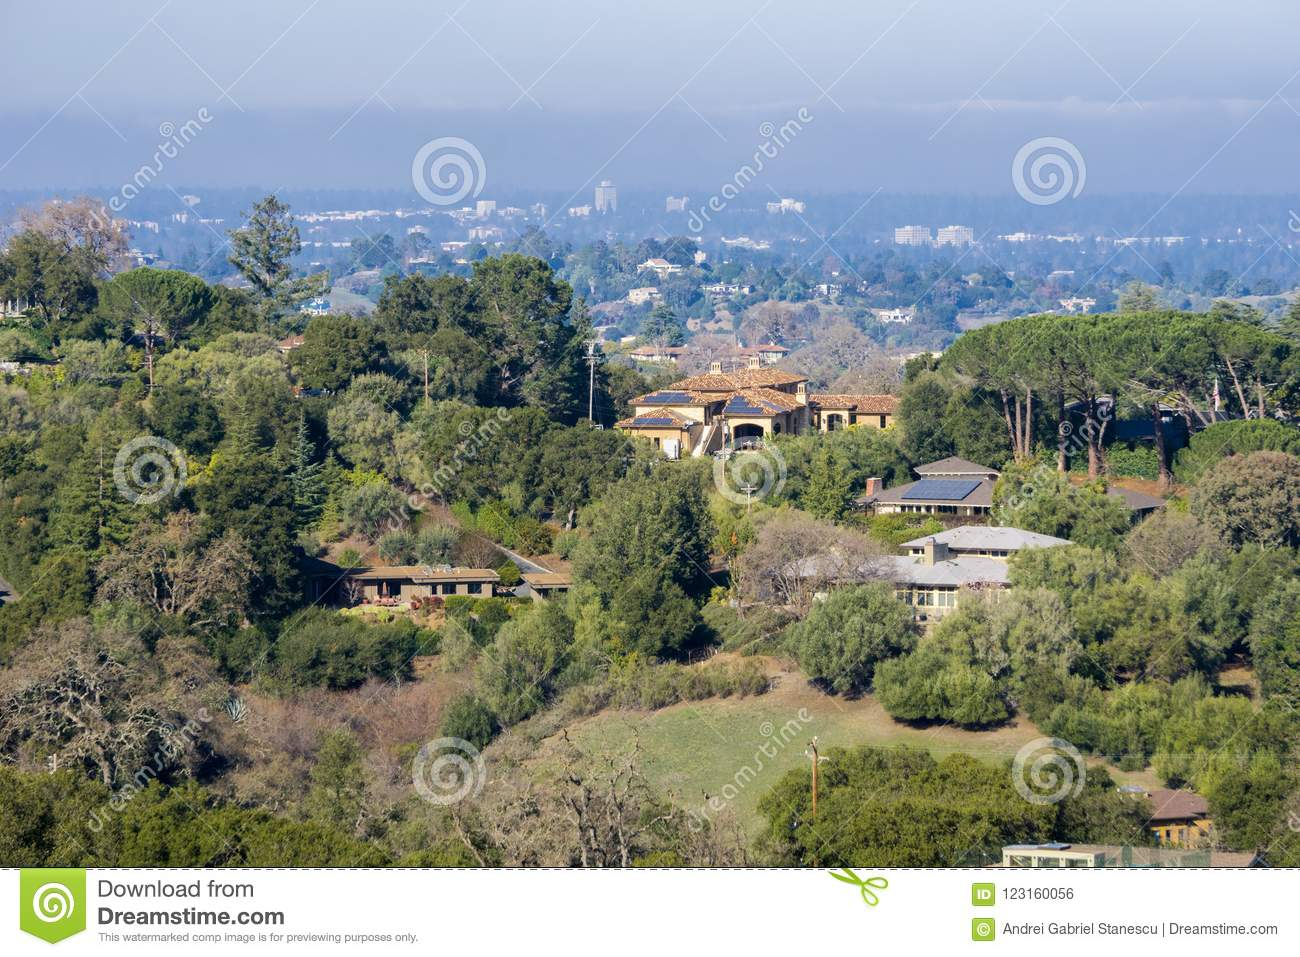 View towards the houses built in Los Altos hills